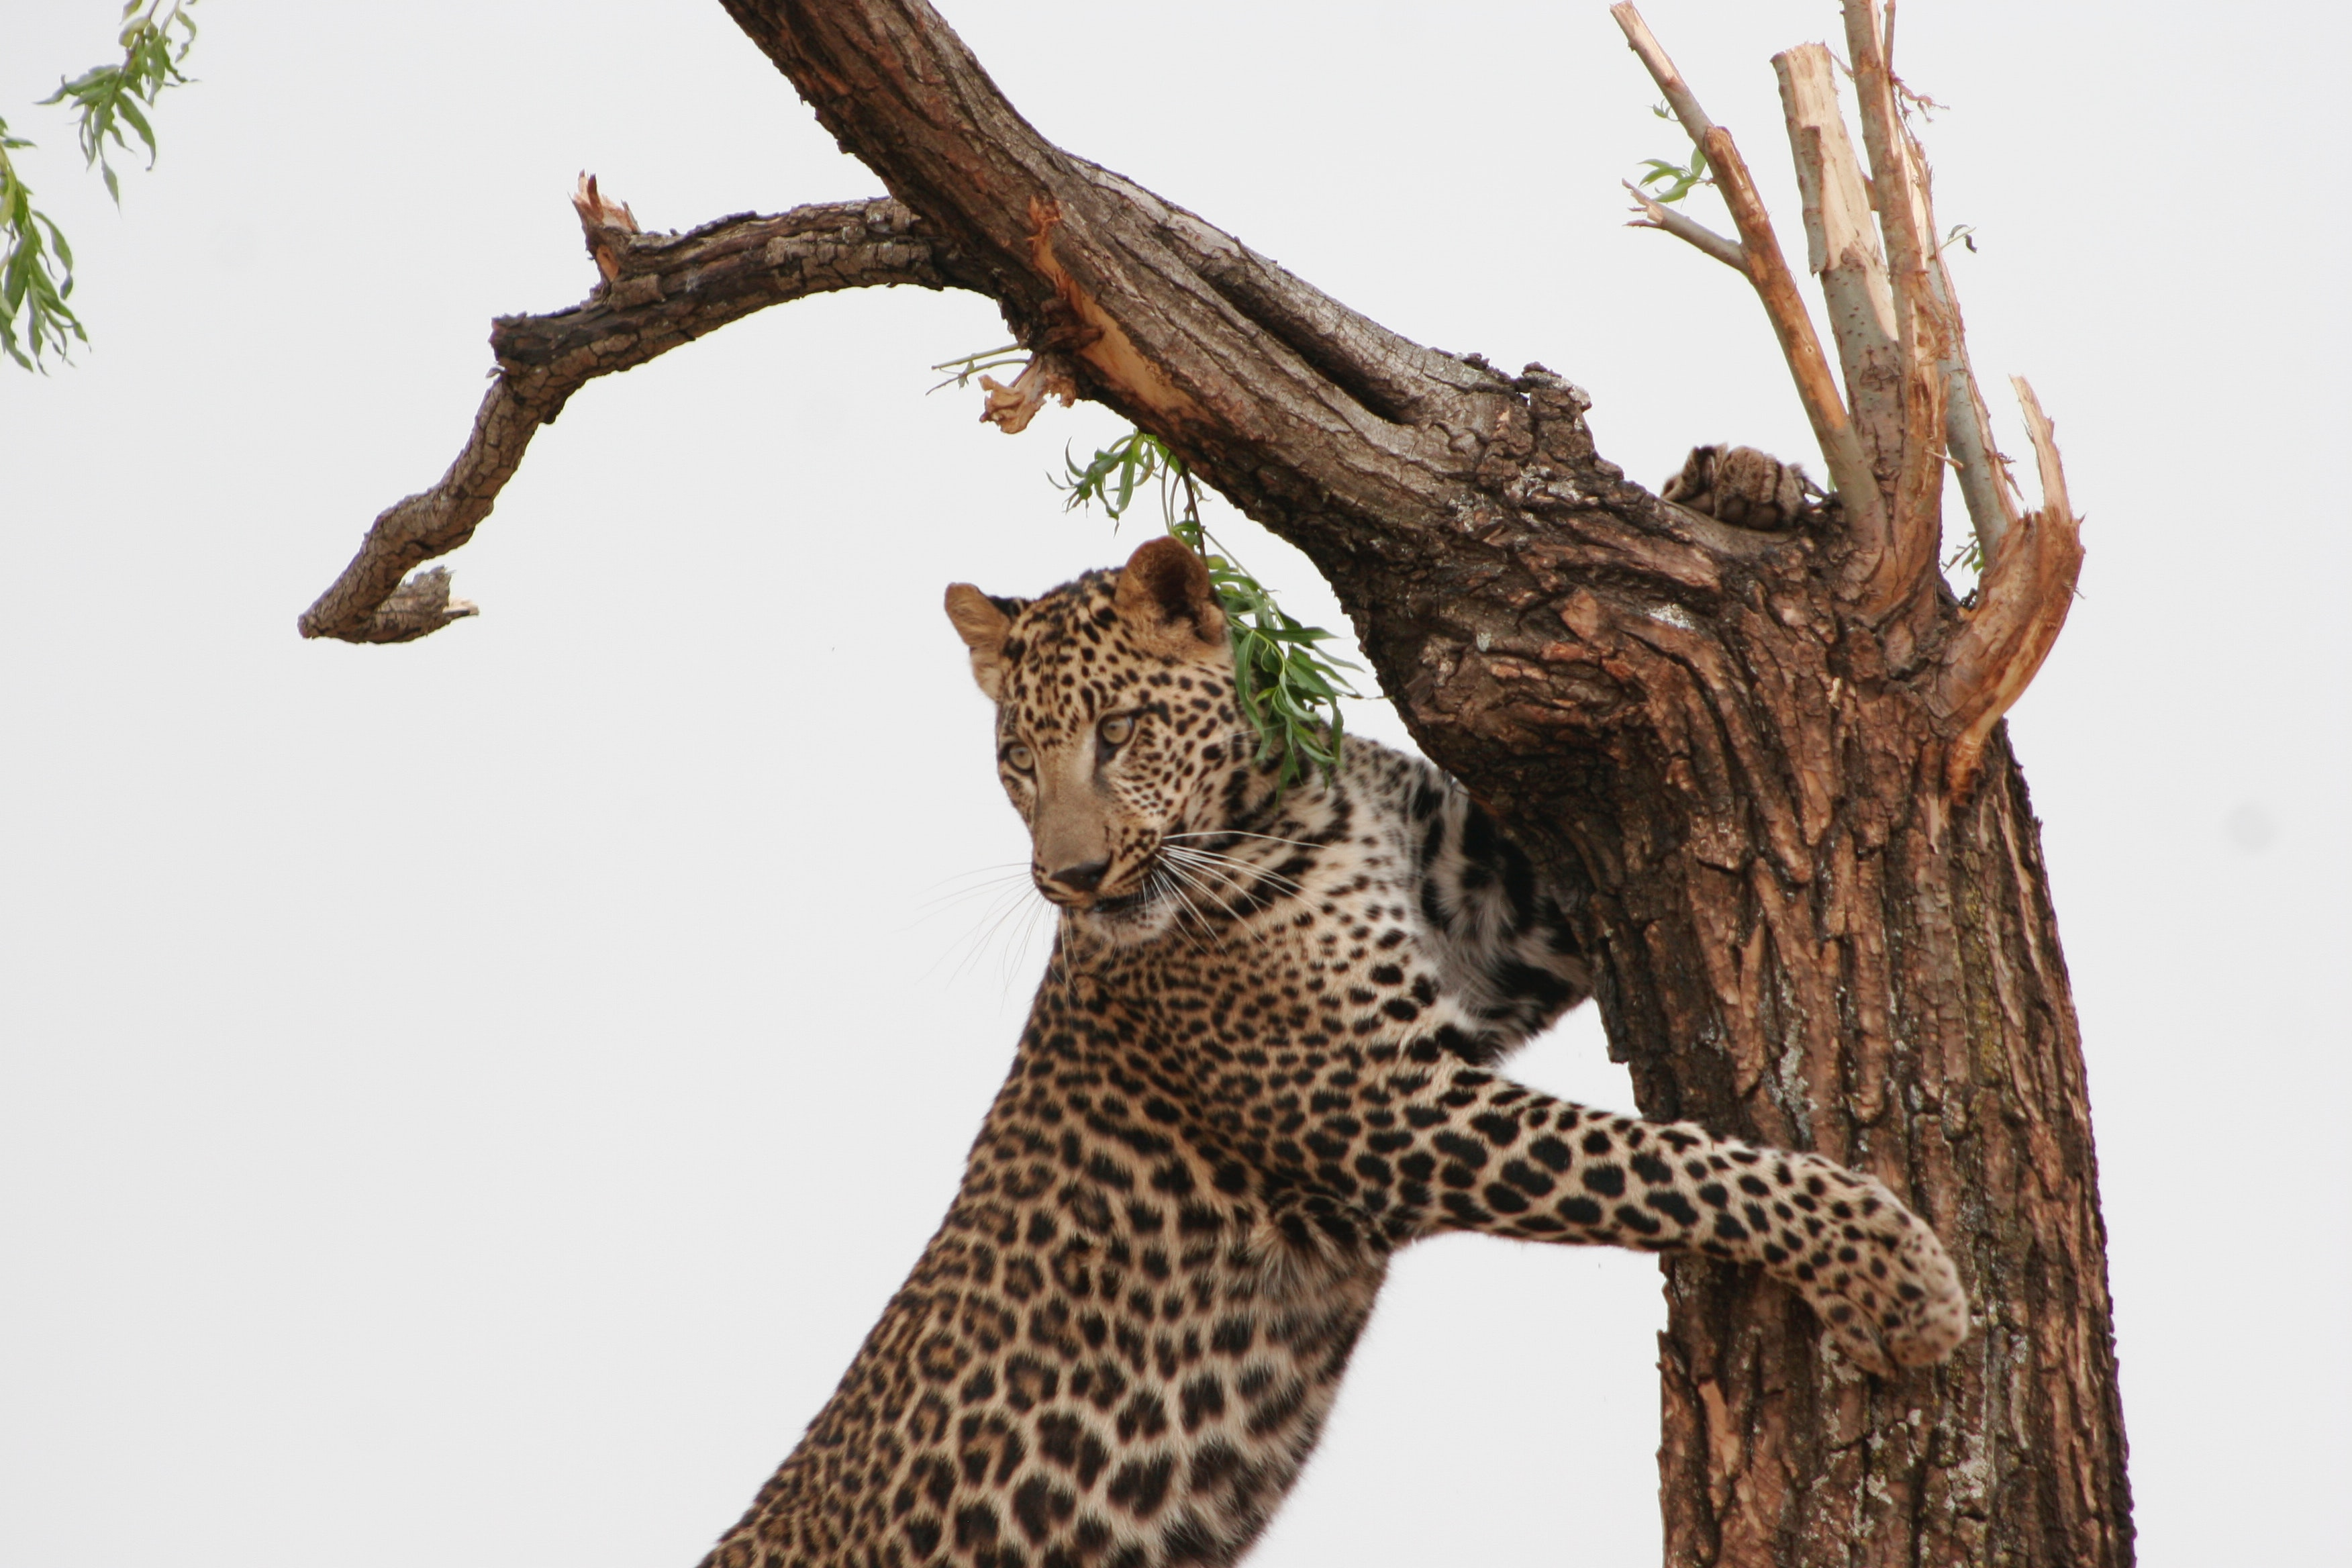 Leopard leaning on tree photo